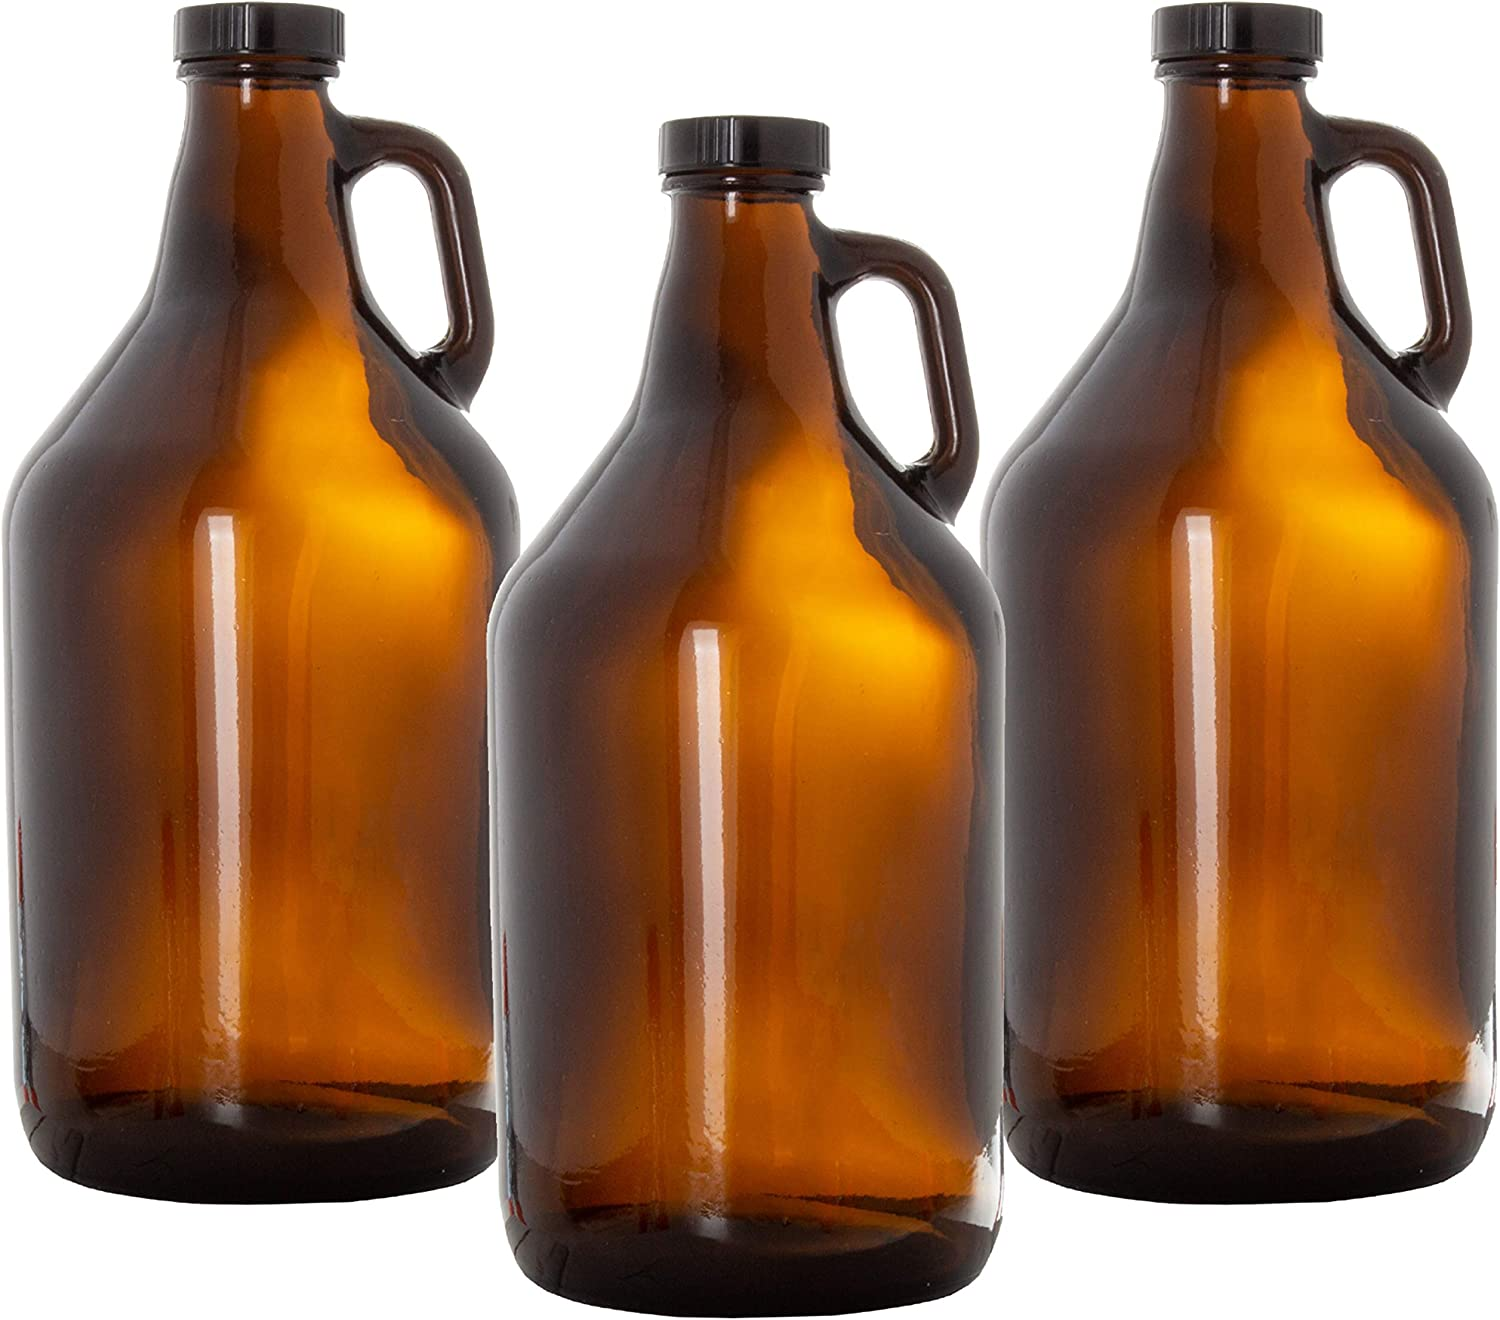 Amber Glass Growlers for Beer, 3 Pack - 64 oz Half Gallon Jug Set with Lids - Great for Home Brewing, Kombucha, Cider & More